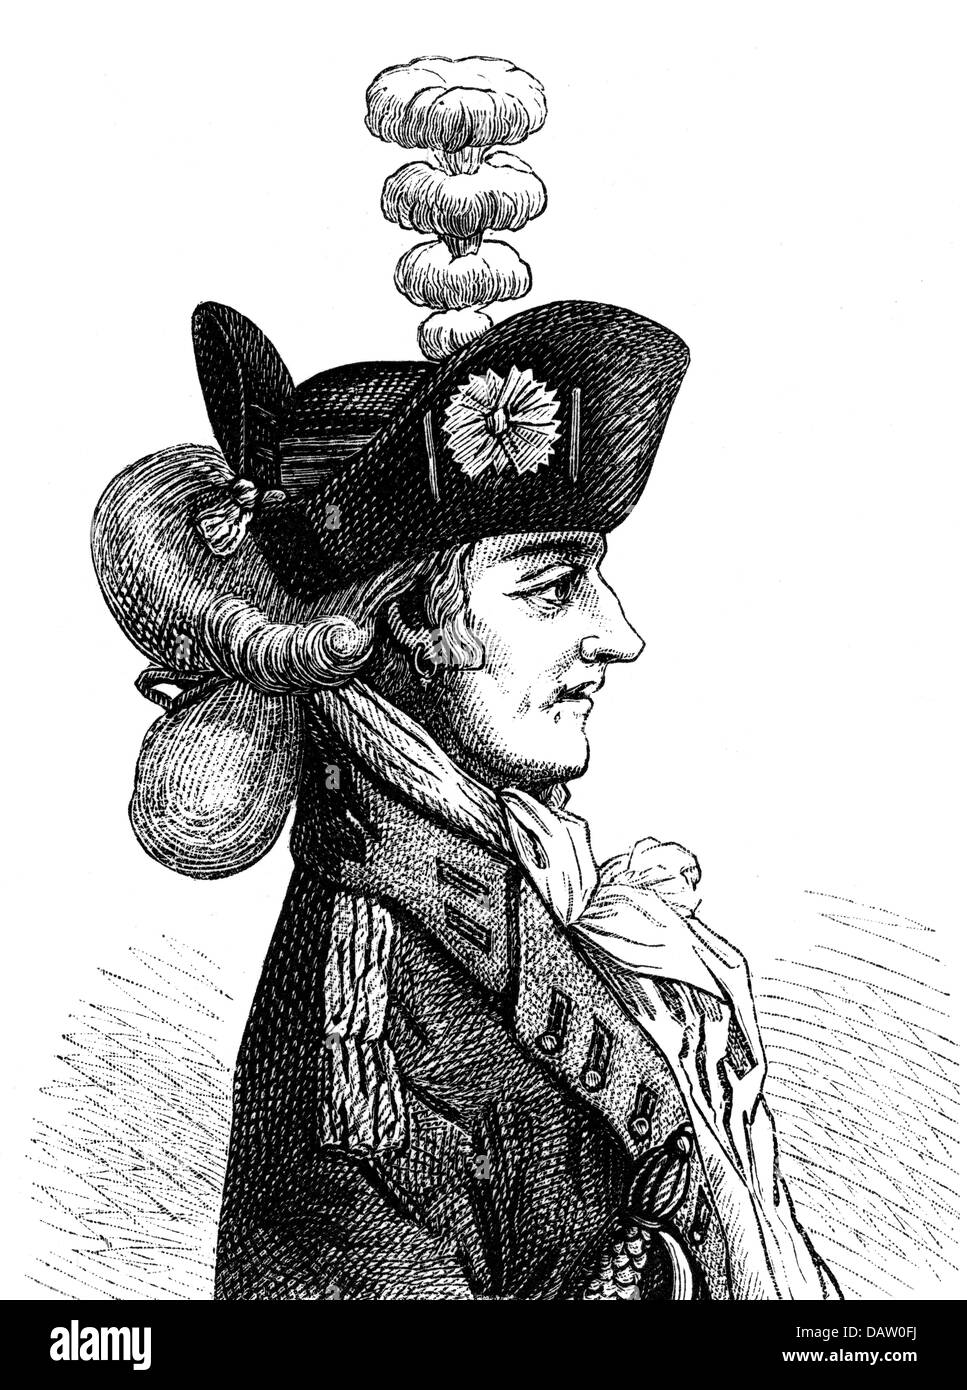 military, France, a recruiting officer from the 18th century, portrait, profile, wood engraving, 19th century, officers, - Stock Image